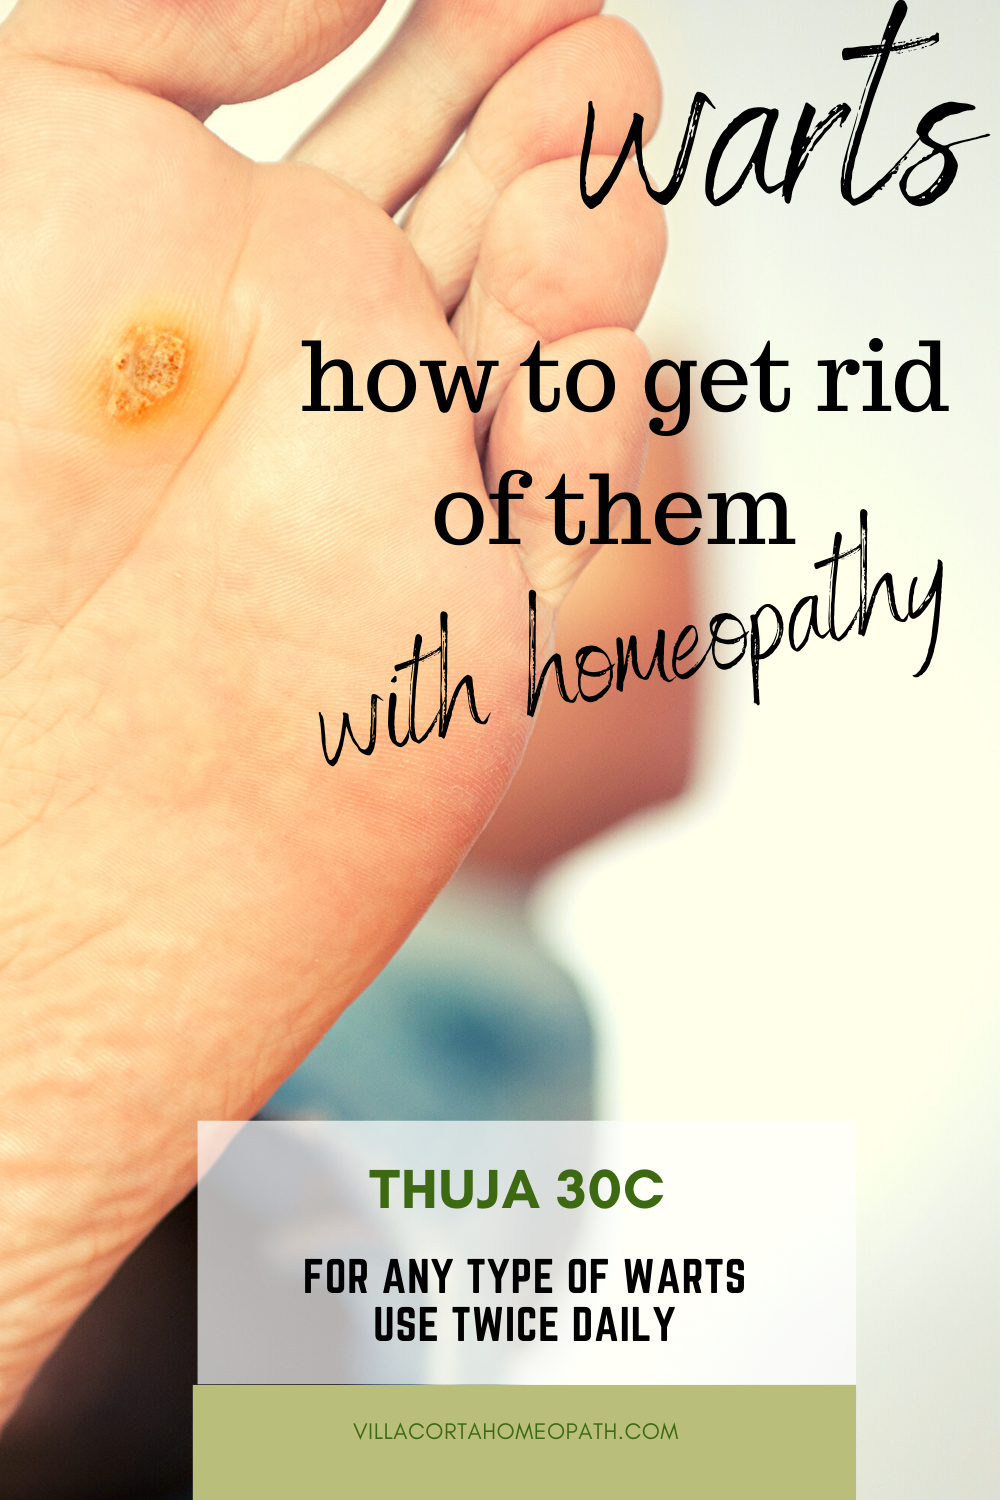 Wart Remedies. How To Get Rid Of Them.